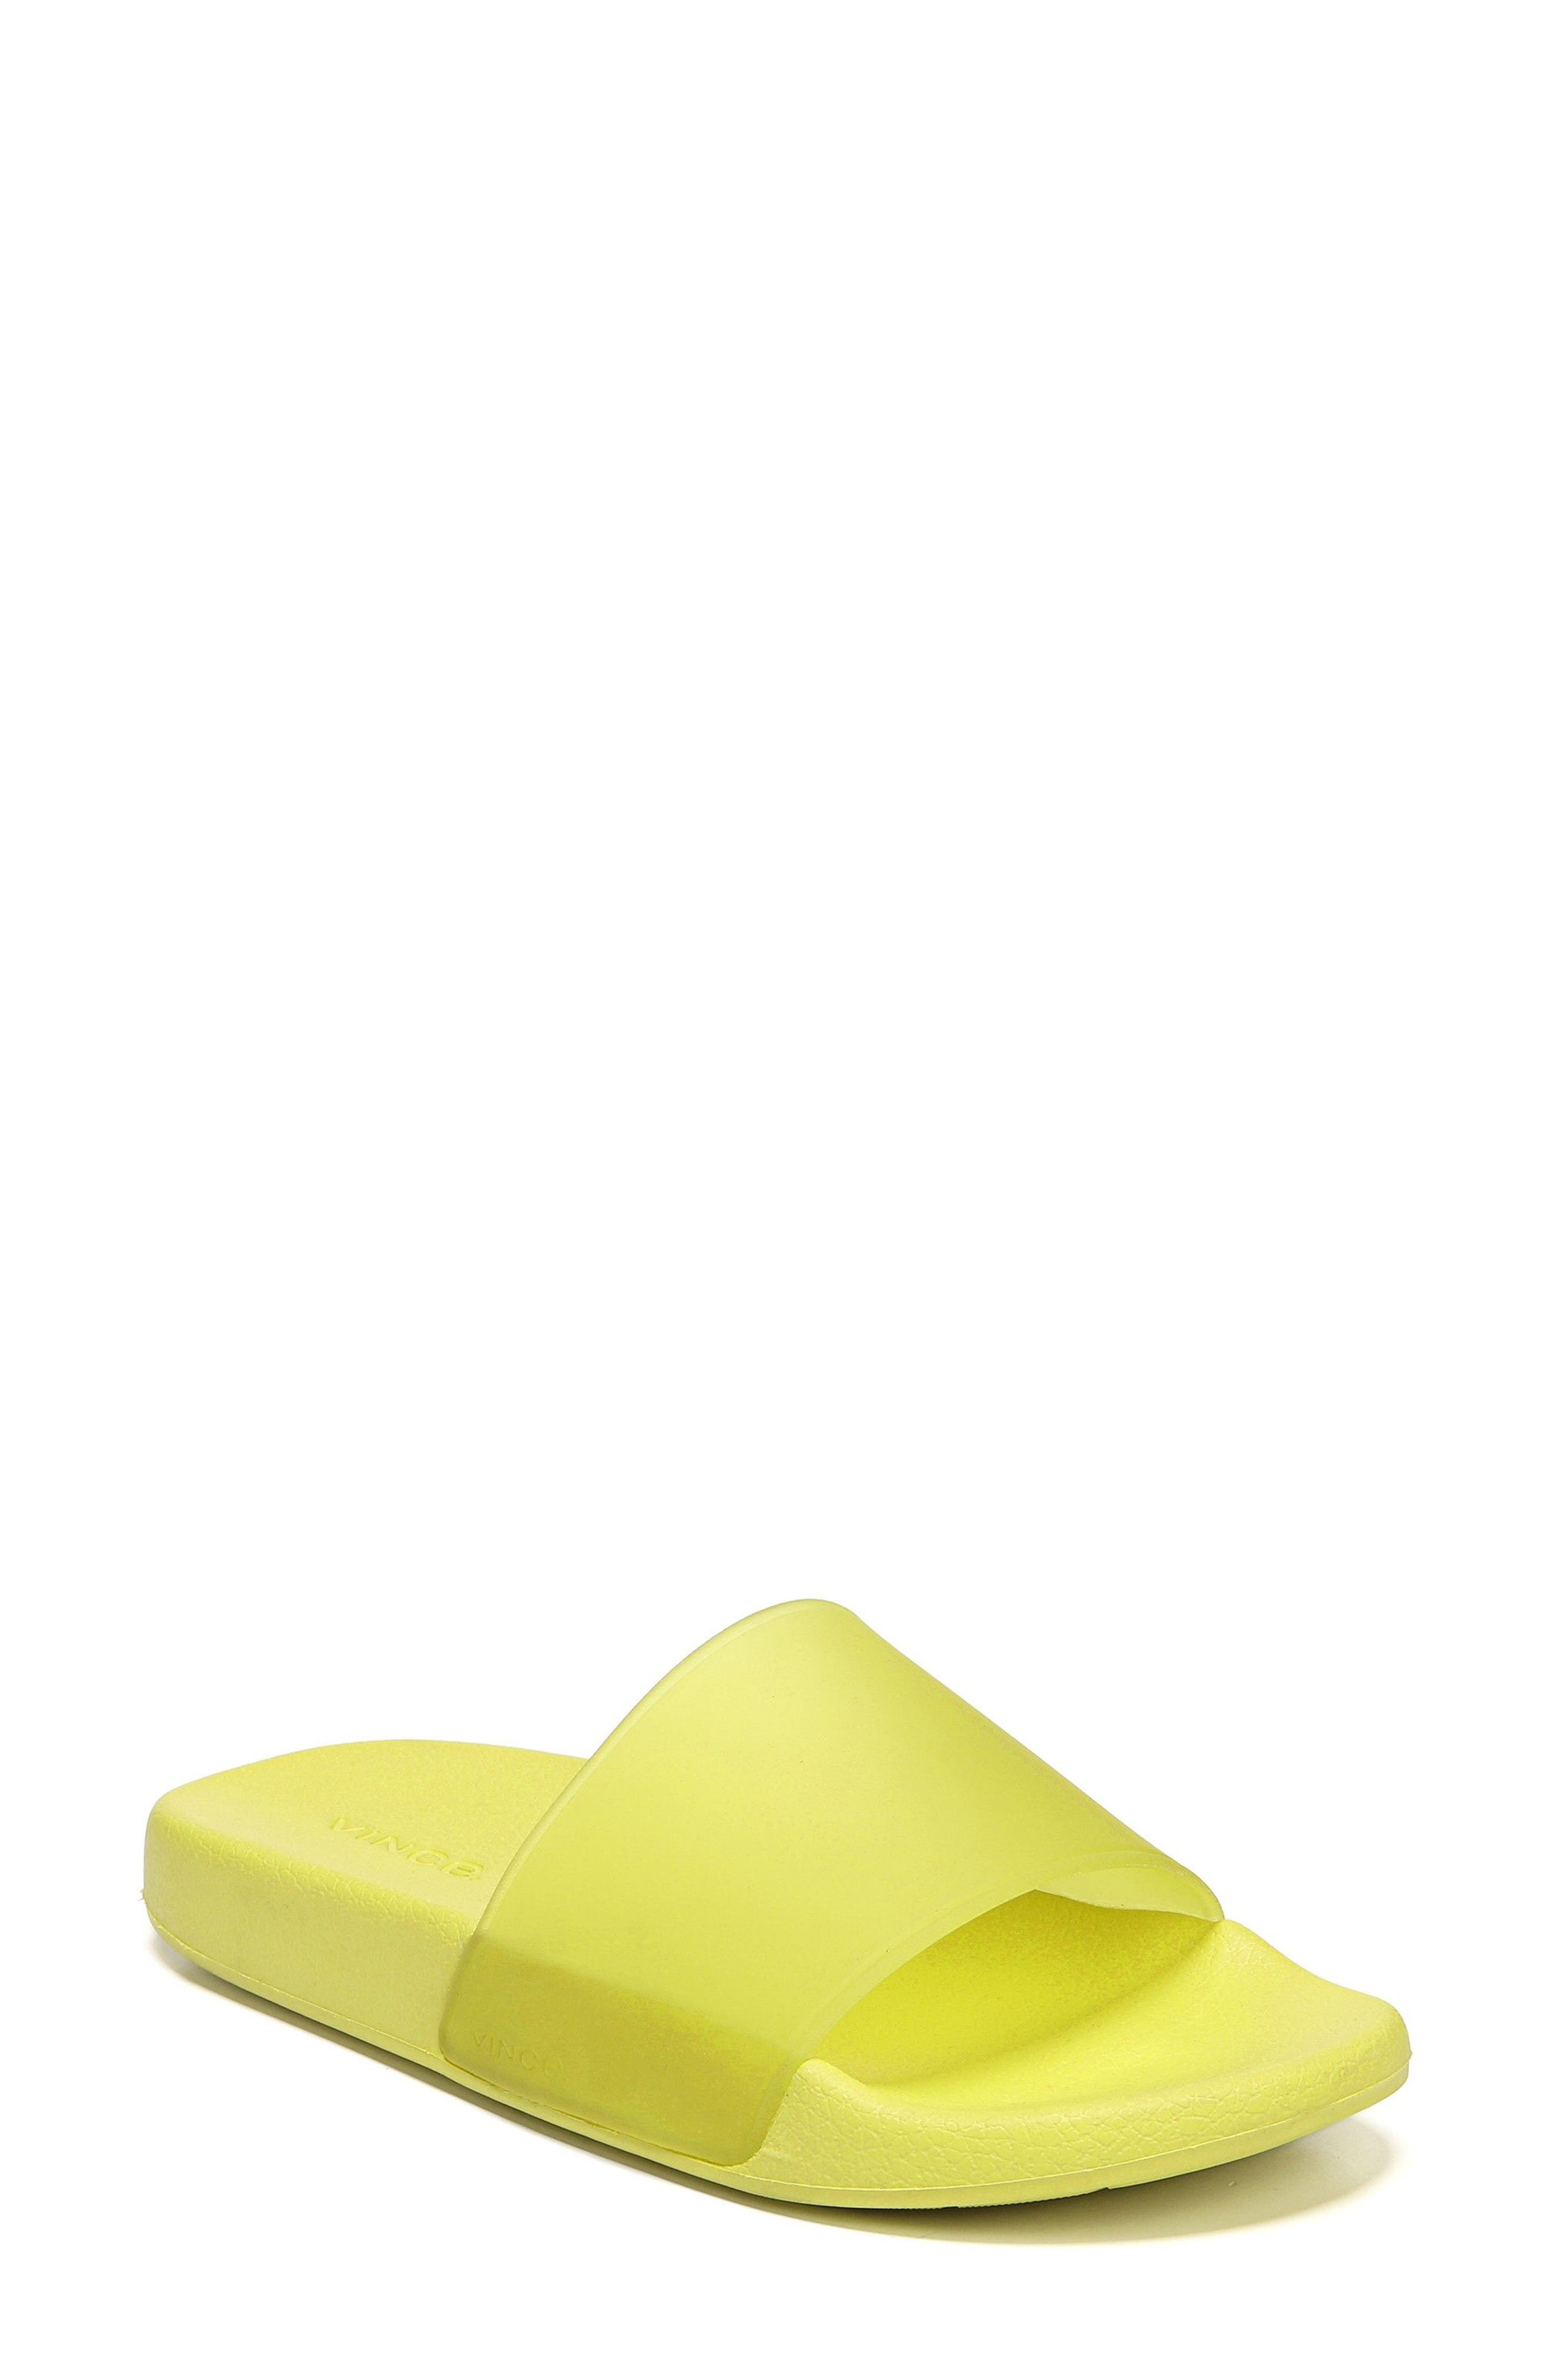 Alternate Image 1 Selected - Vince Westcoast Slide Sandal (Women)